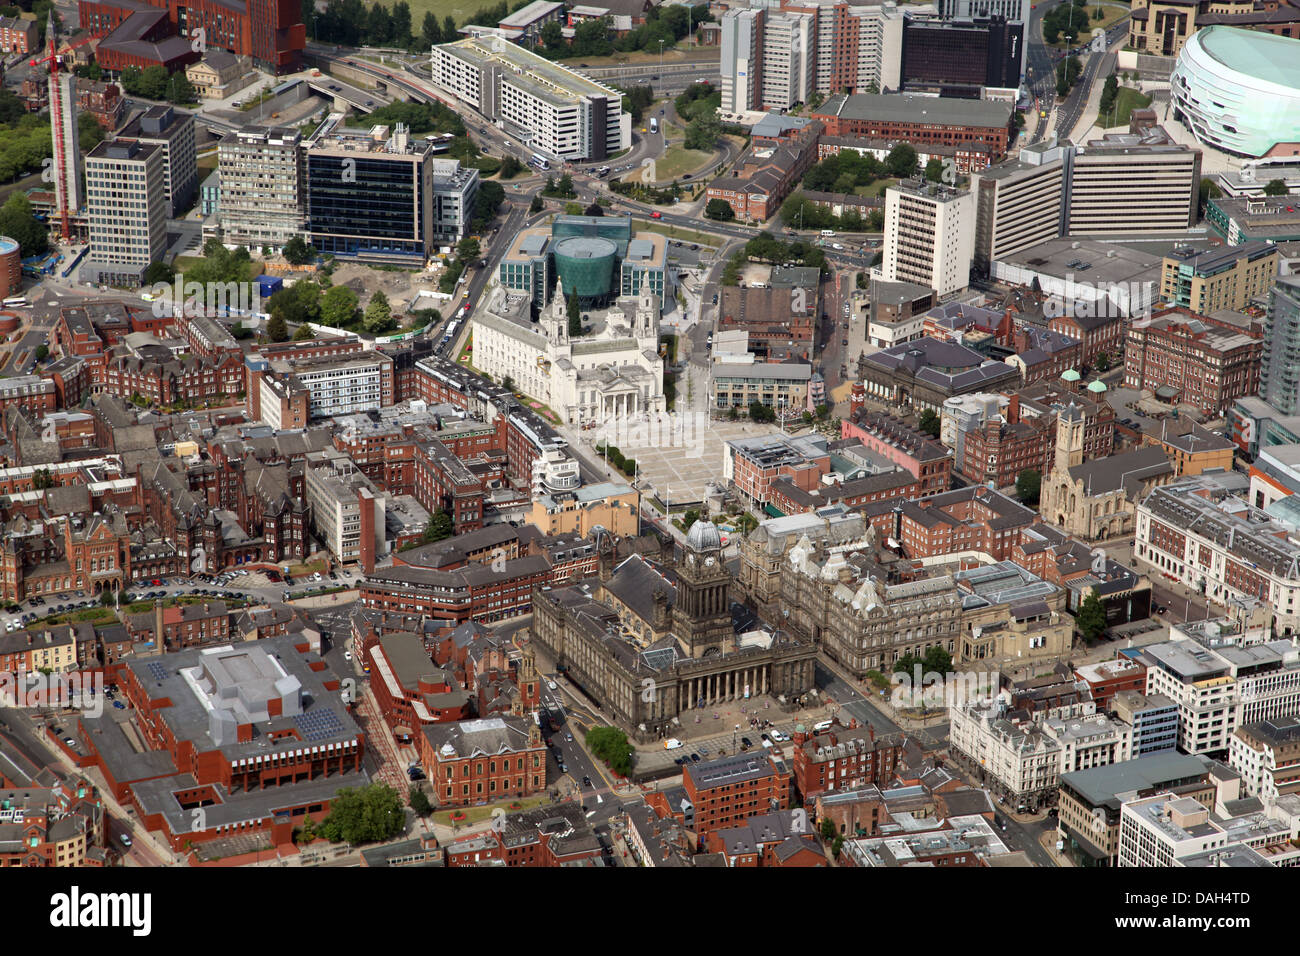 aerial view of Leeds City centre looking north across the Headrow towards the Town Hall and Civic Quarter - Stock Image